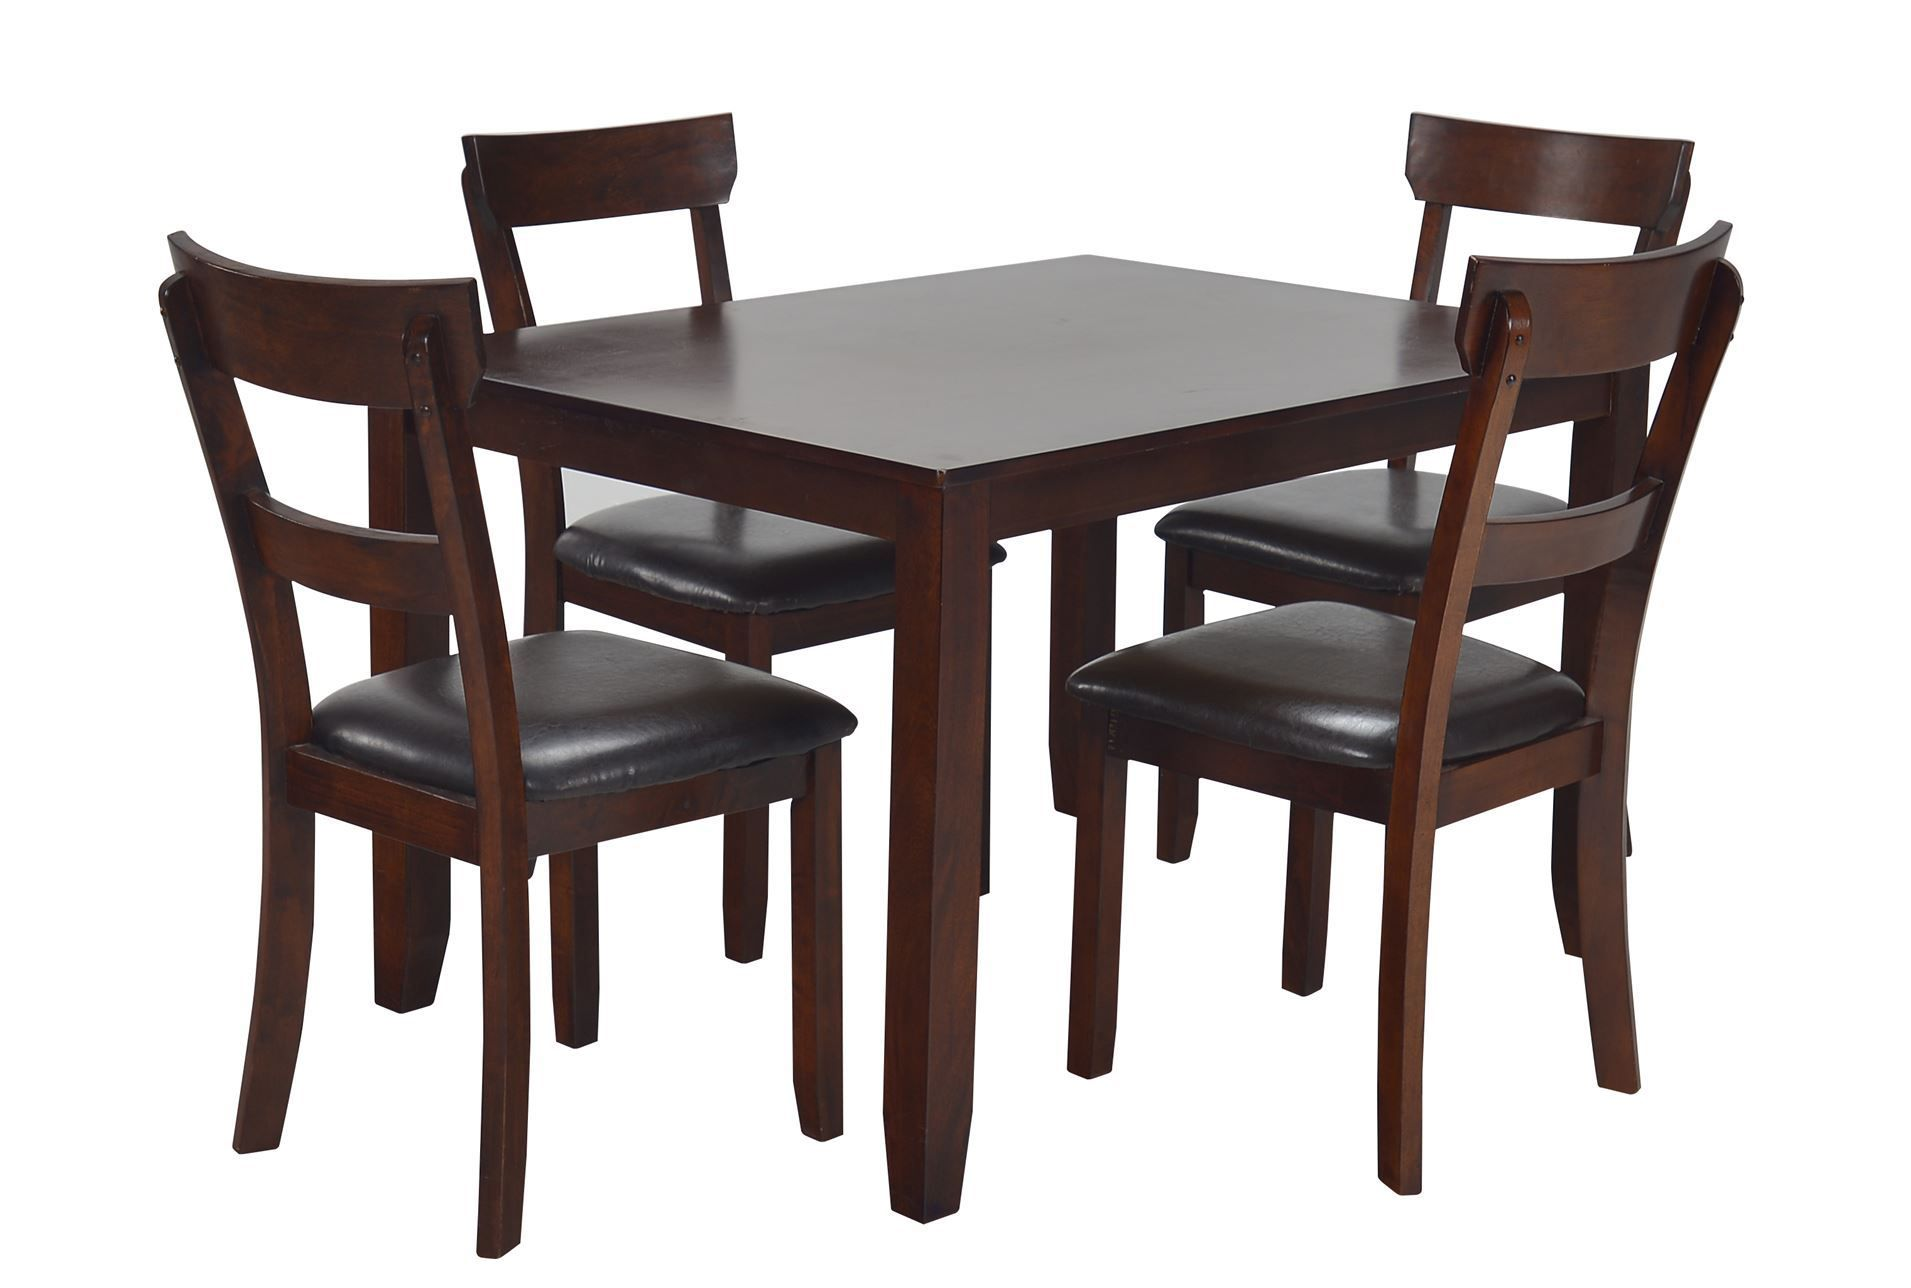 Living Spaces Dining Chairs Rio 5 Piece Dining Set 295 Living Spaces Life